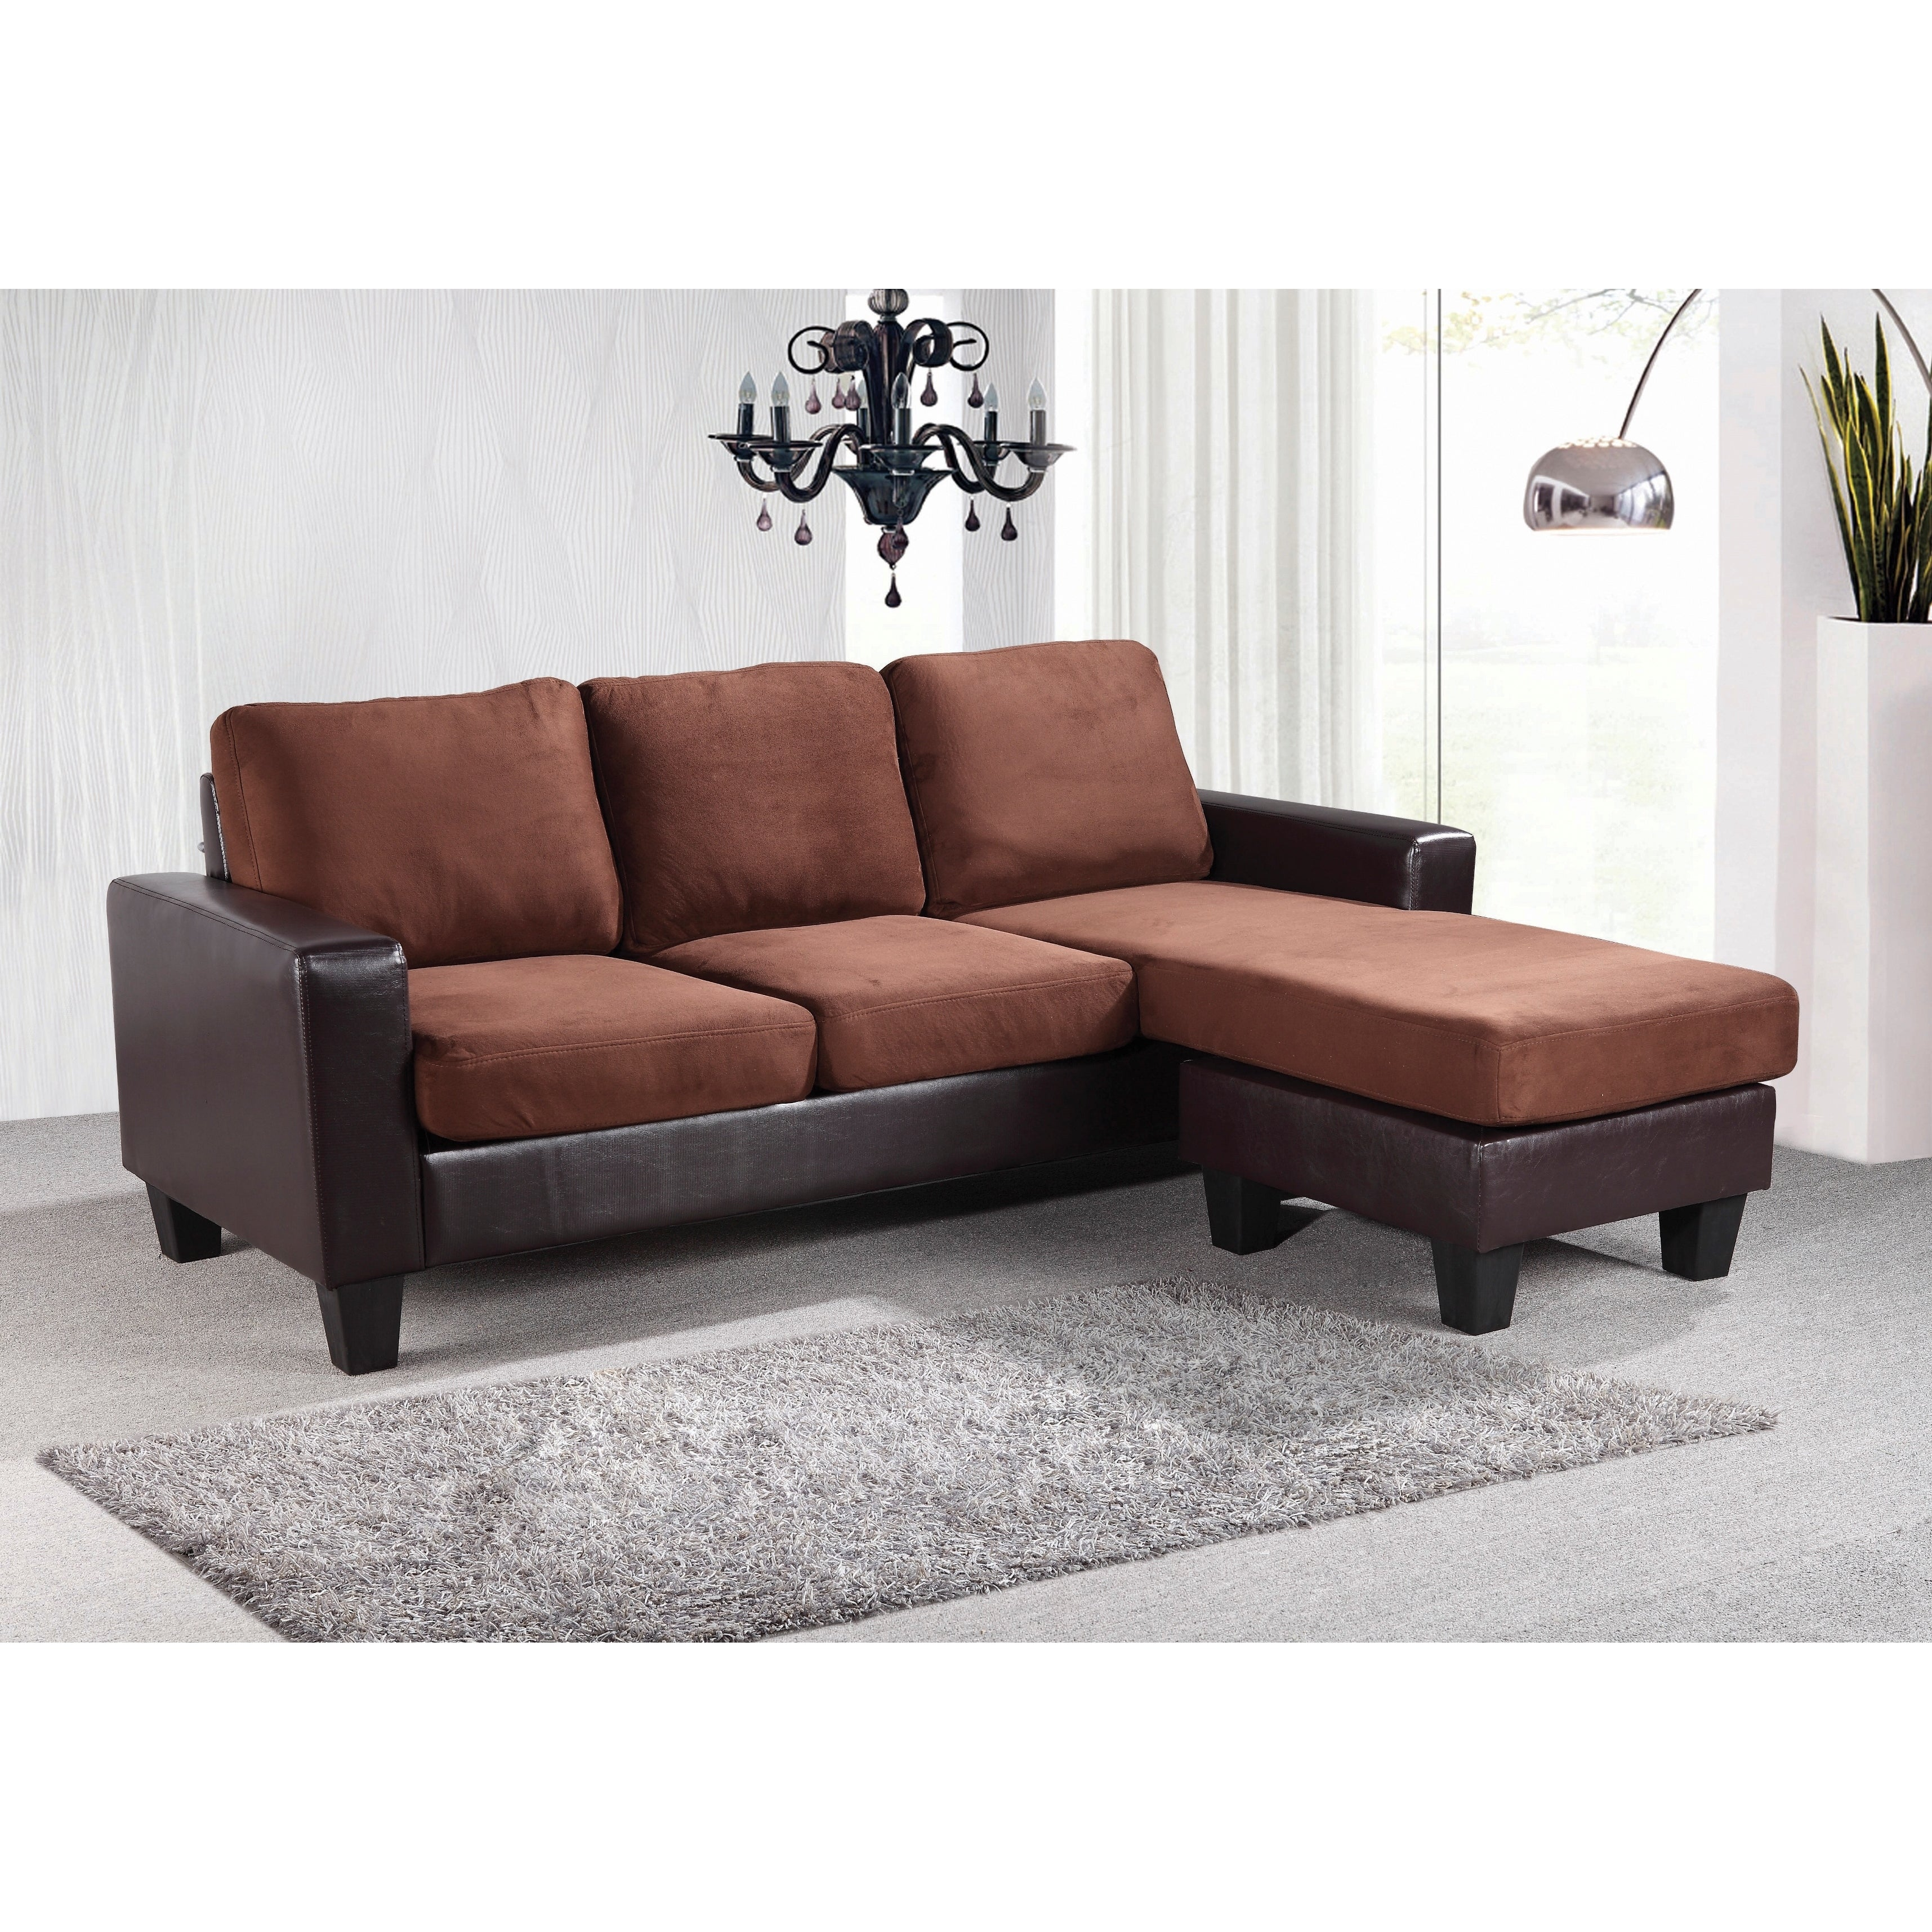 Lyke Home Two-Tone Fabric Reversible Sofa Chaise, Tan (Fa...